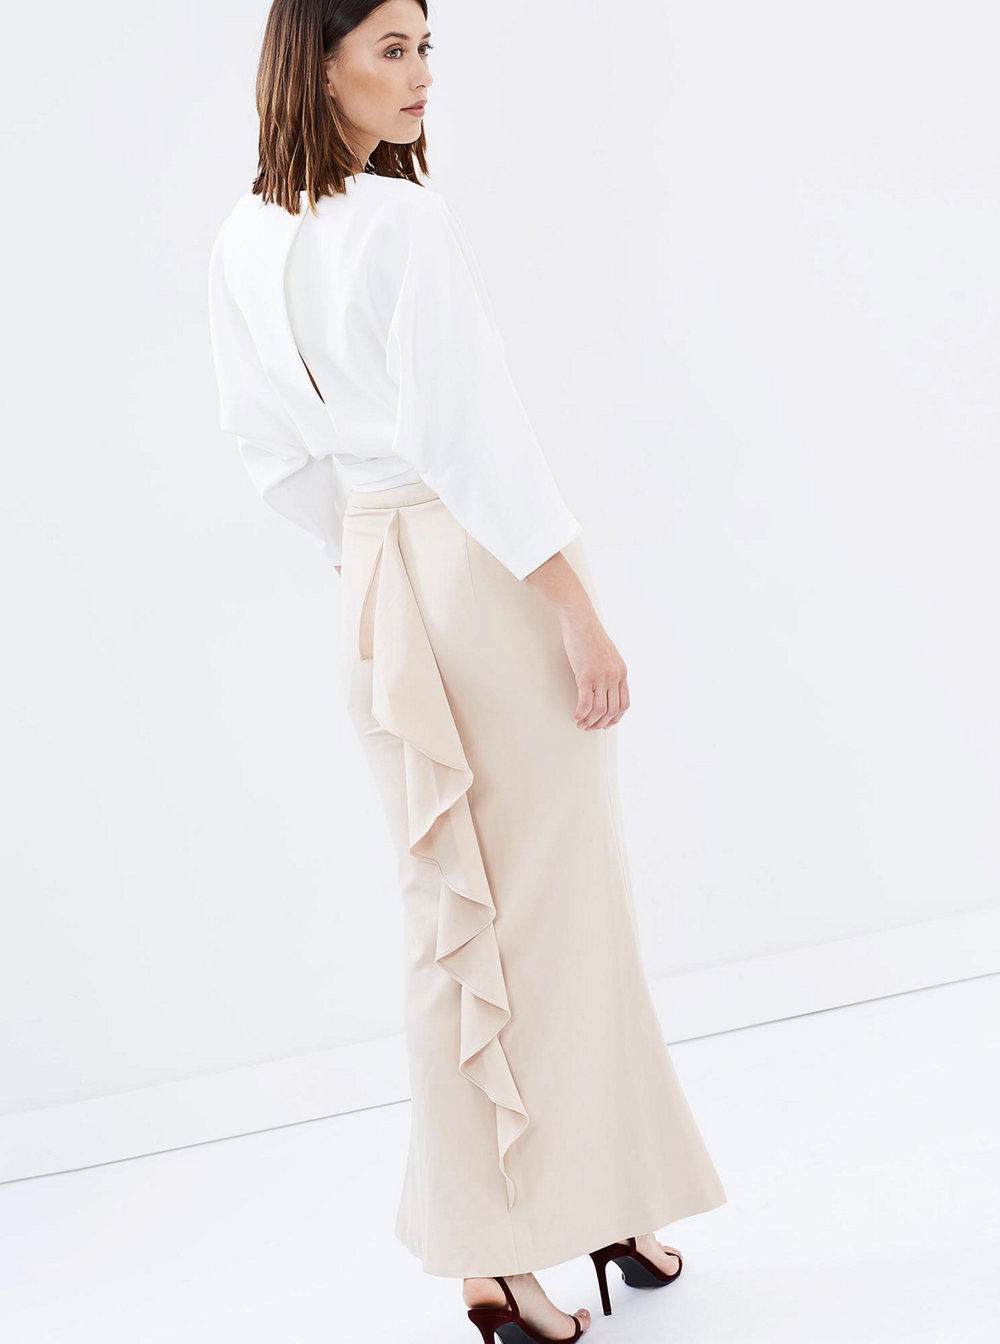 Friend of Audrey forever maxi skirt $169.95